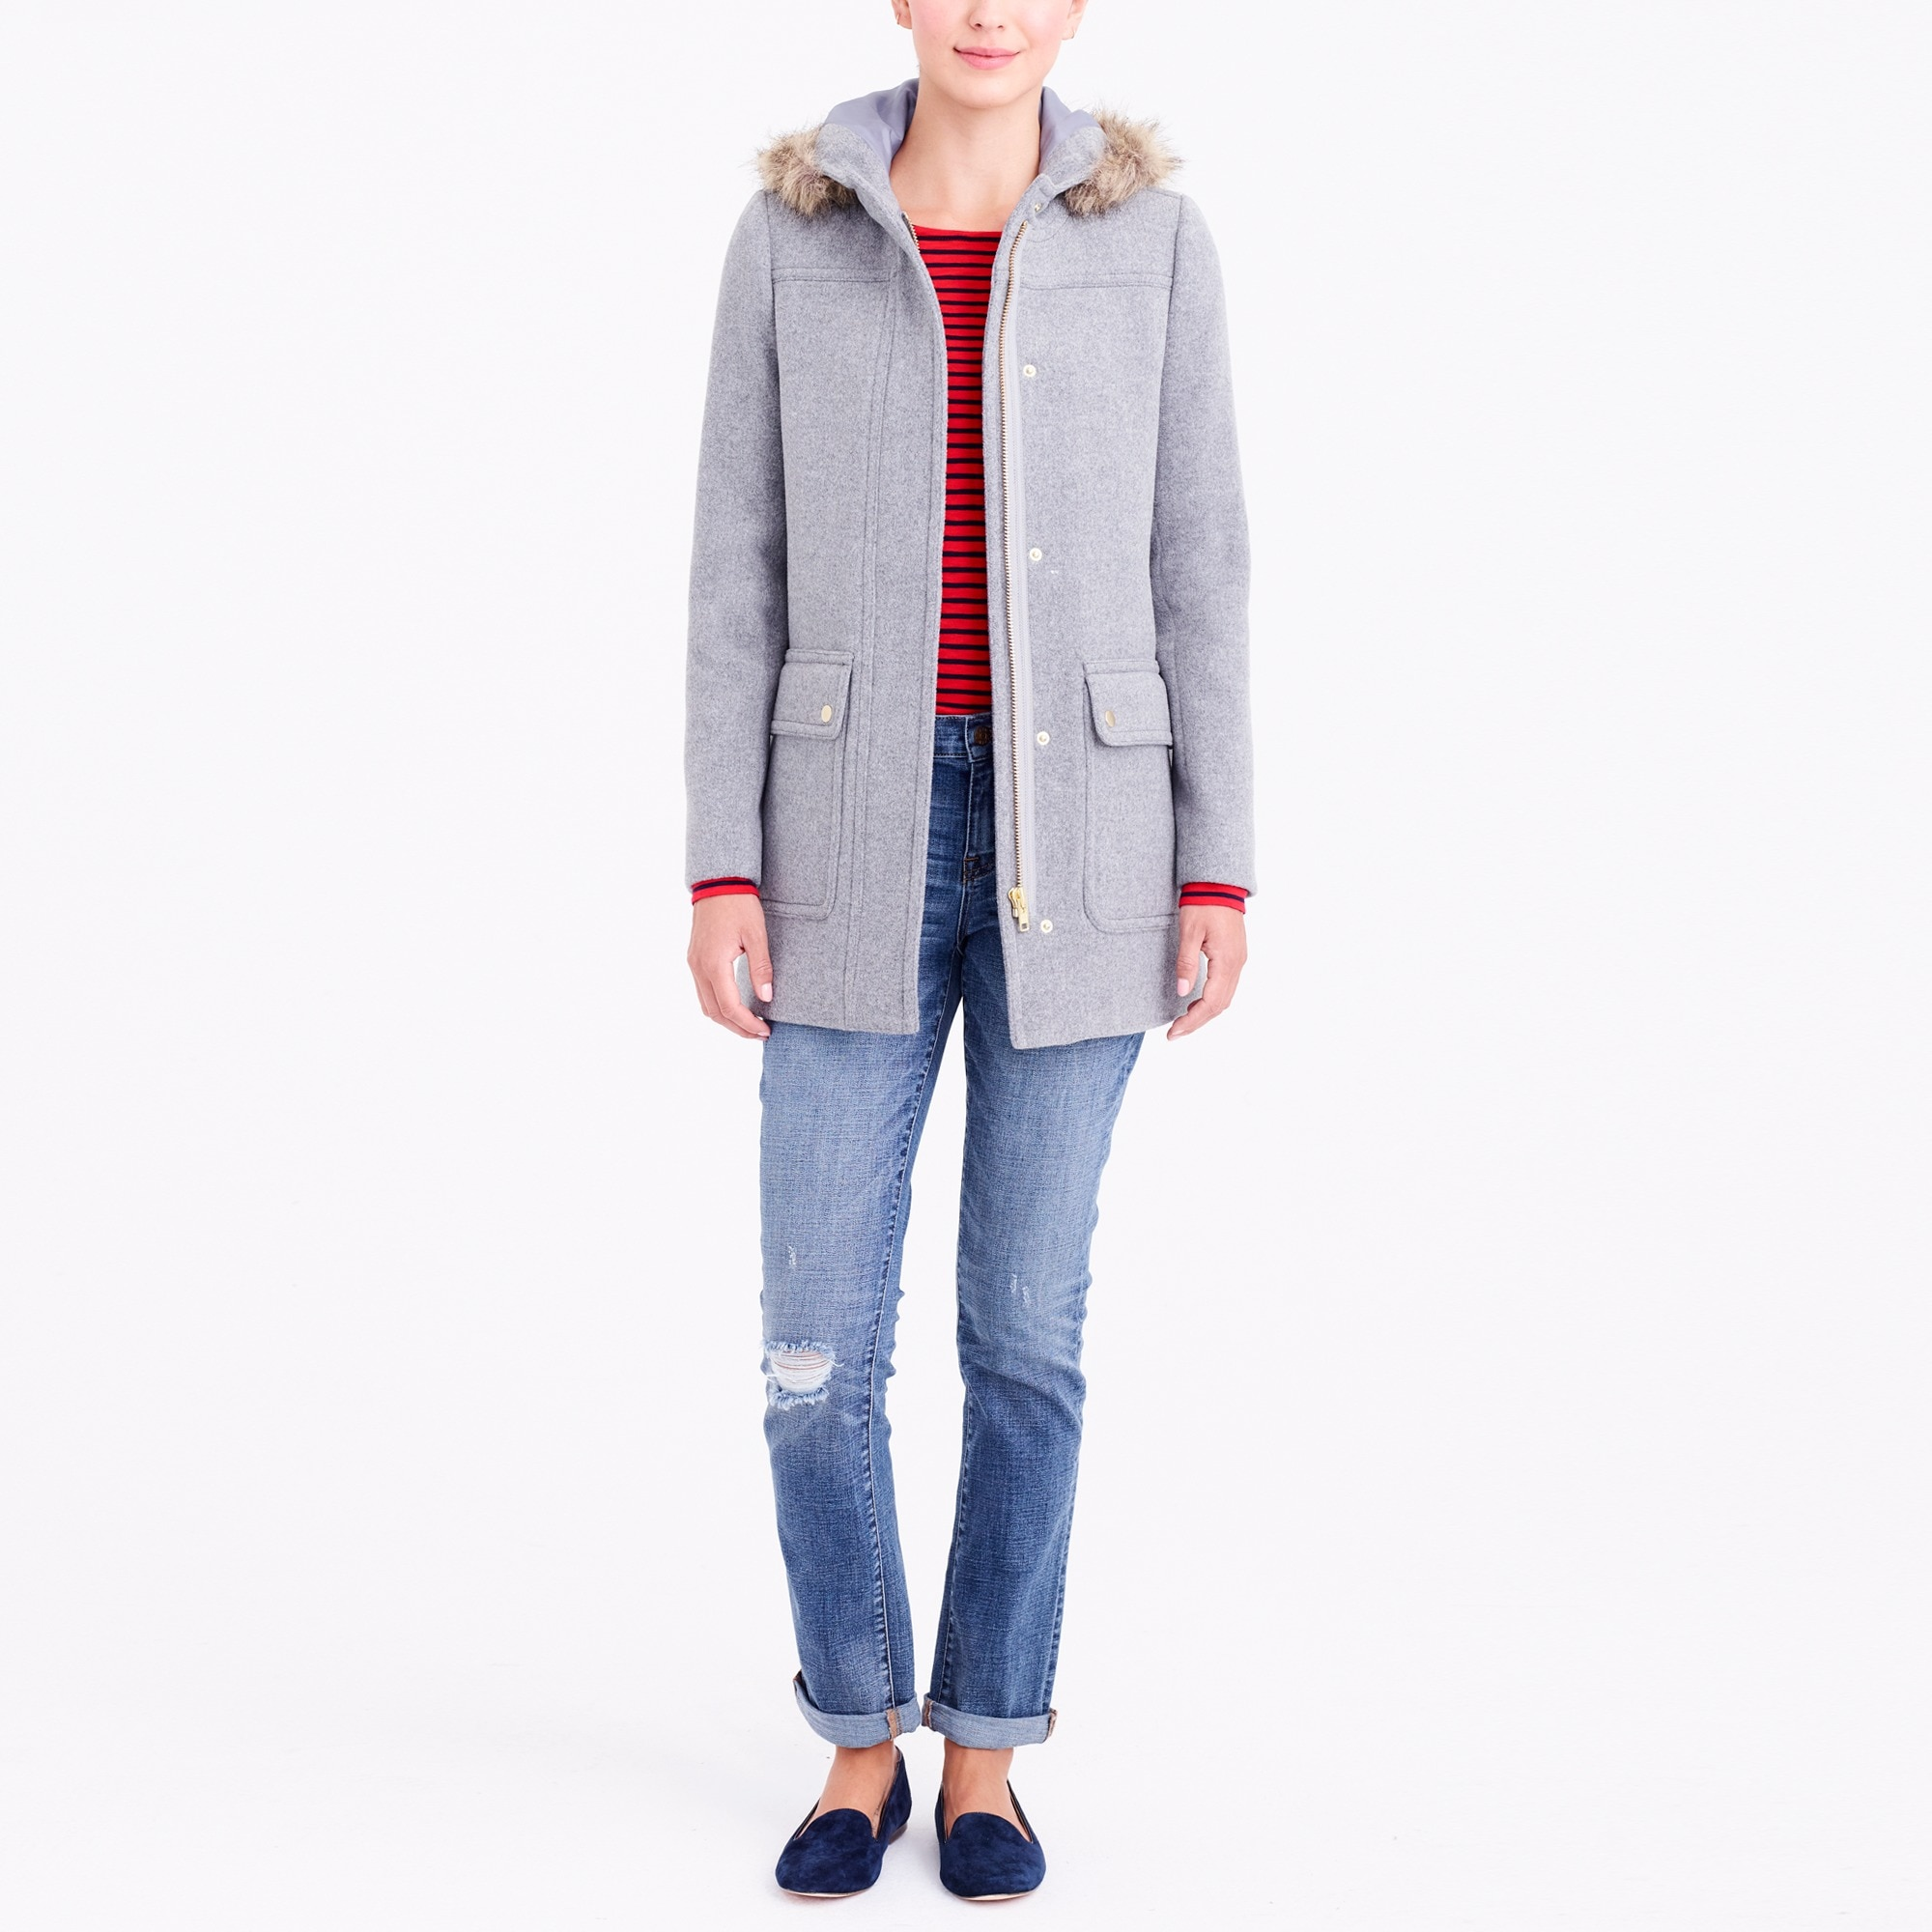 vail parka : factorywomen sizes 18-20